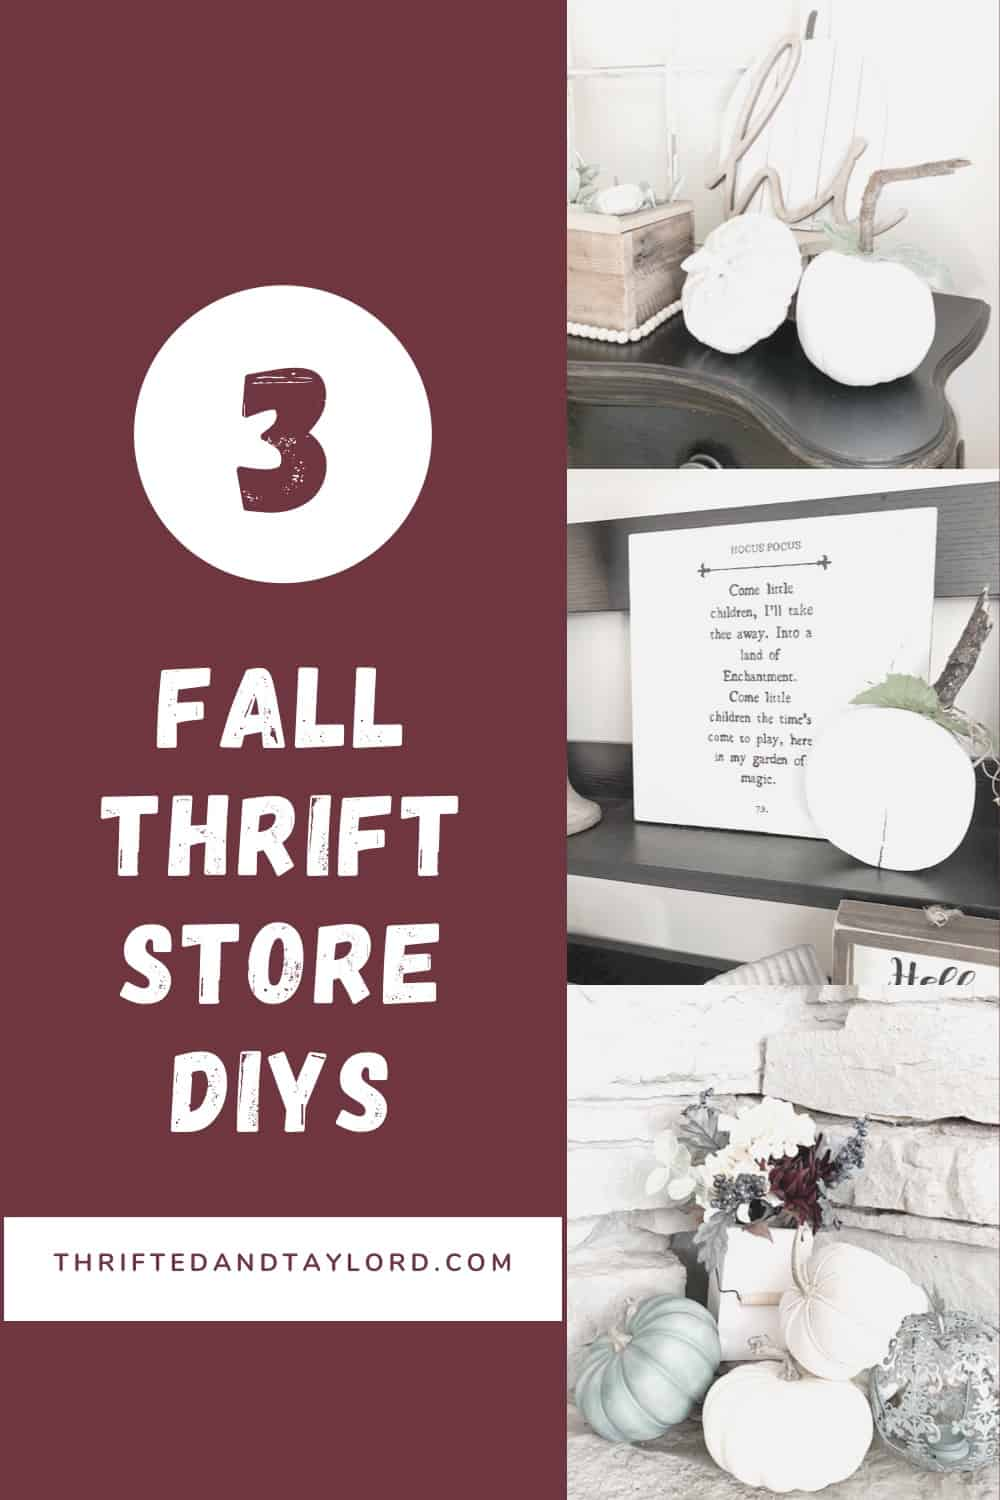 Fall Thrift Store DIYS | Quick and Easy Changes